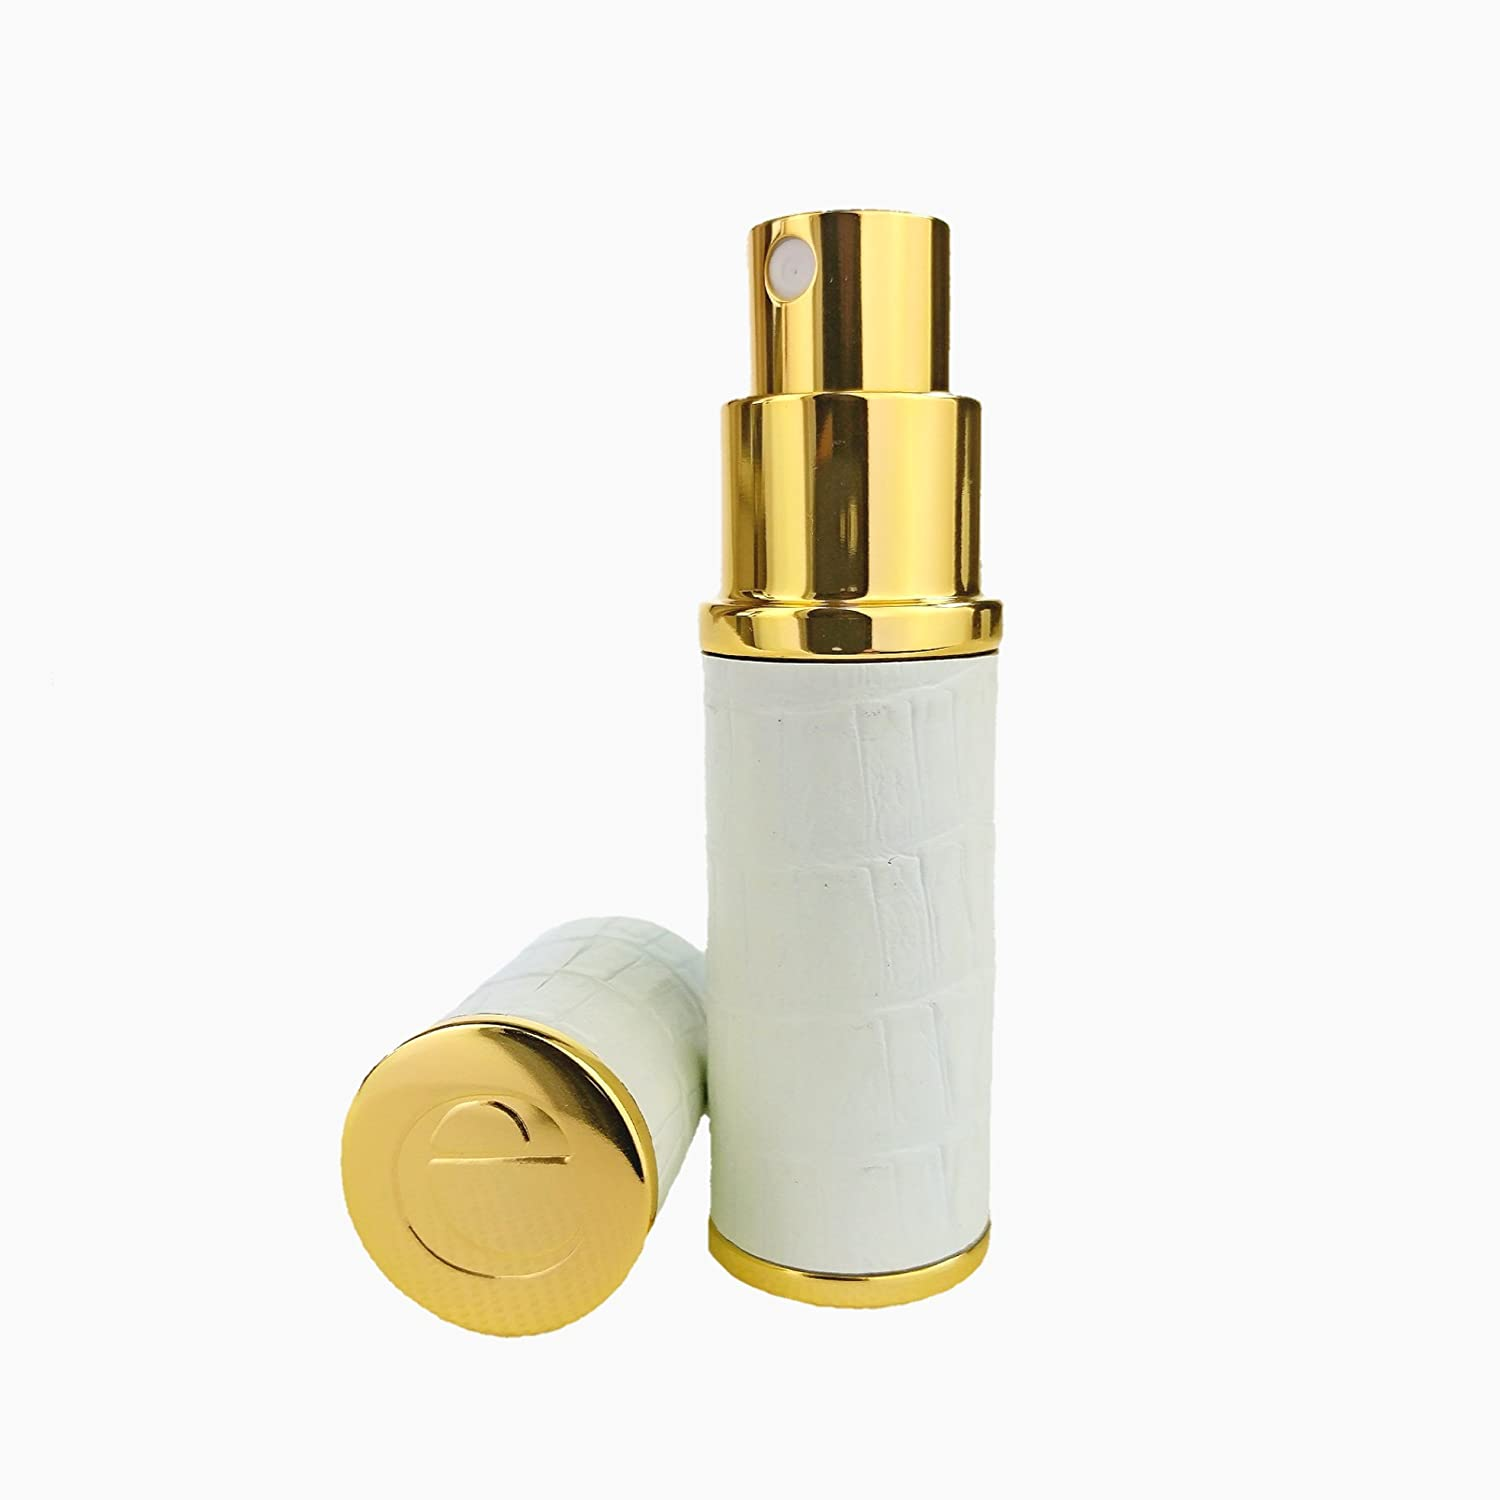 The Essential Atomizer Co. White & Gold Faux Croc 10ml Refillable Spray Perfume Travel Atomizer. Comes with a Funnel & Gift Box